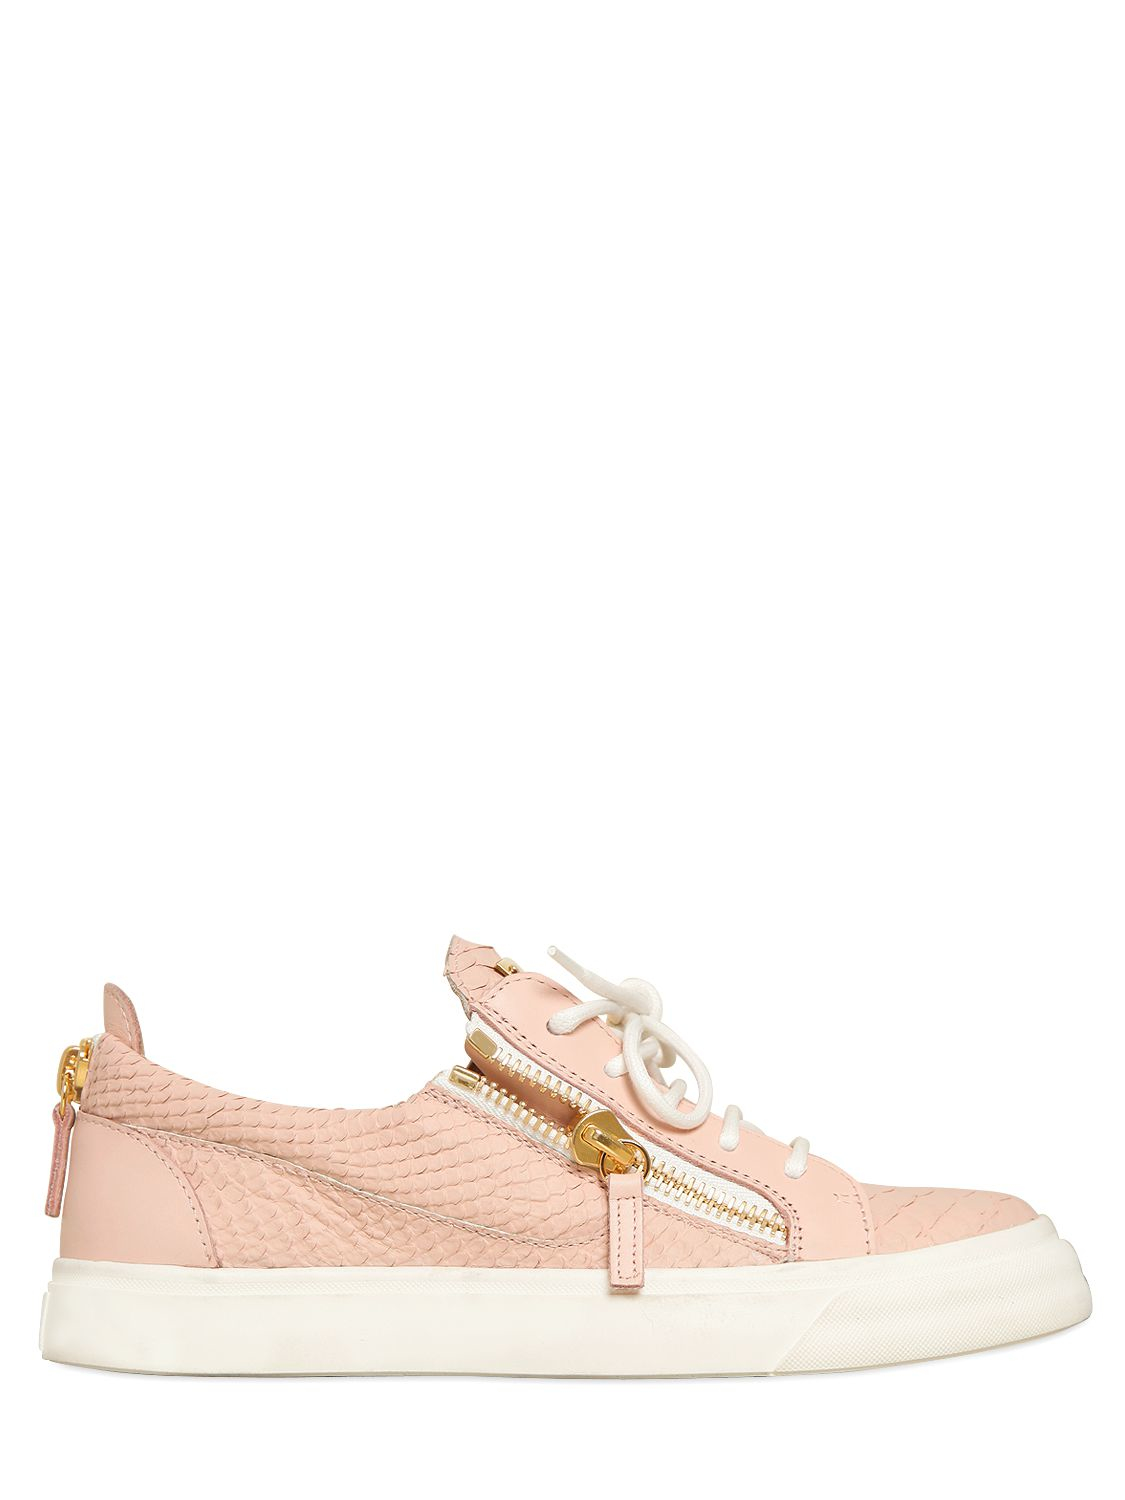 giuseppe zanotti 20mm python embossed leather sneakers in